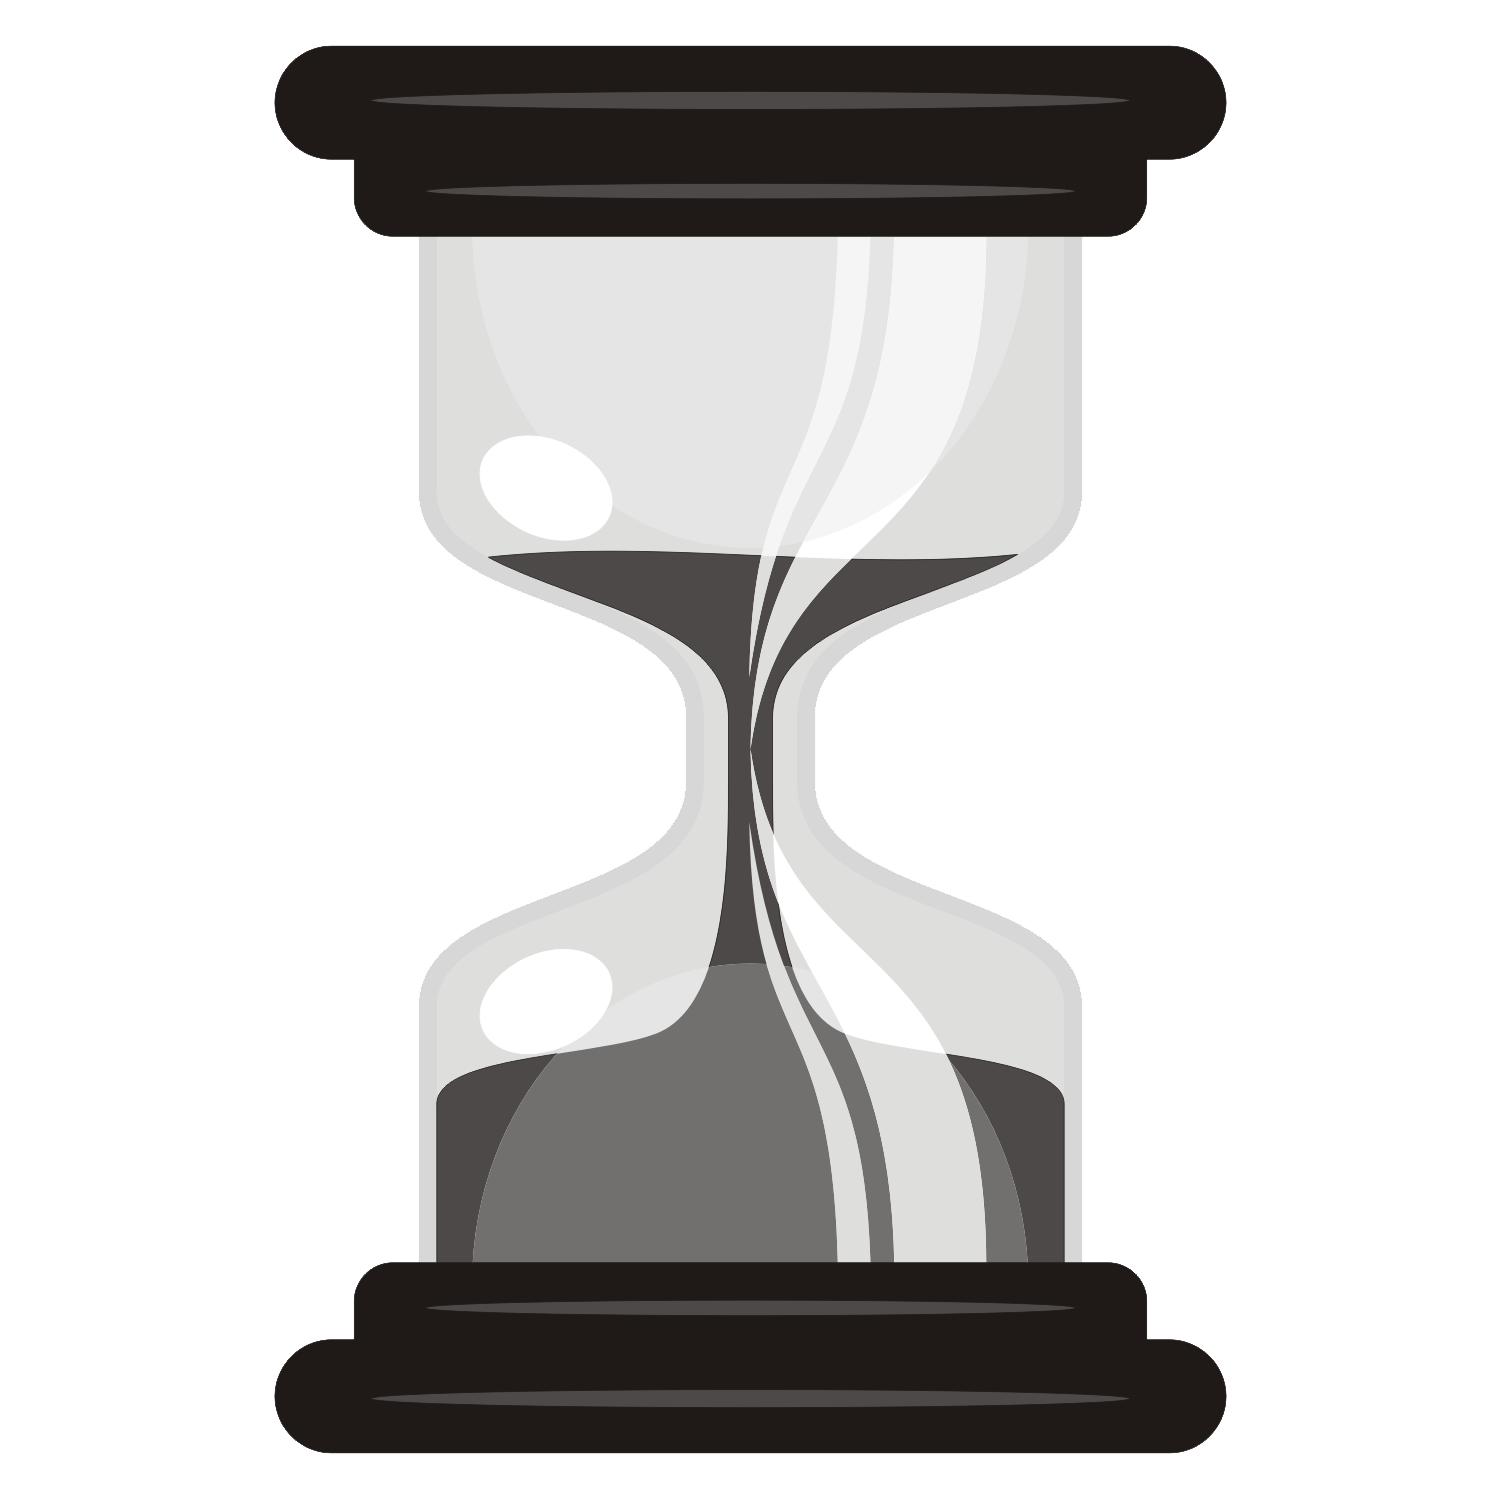 Hourglass File PNG Image